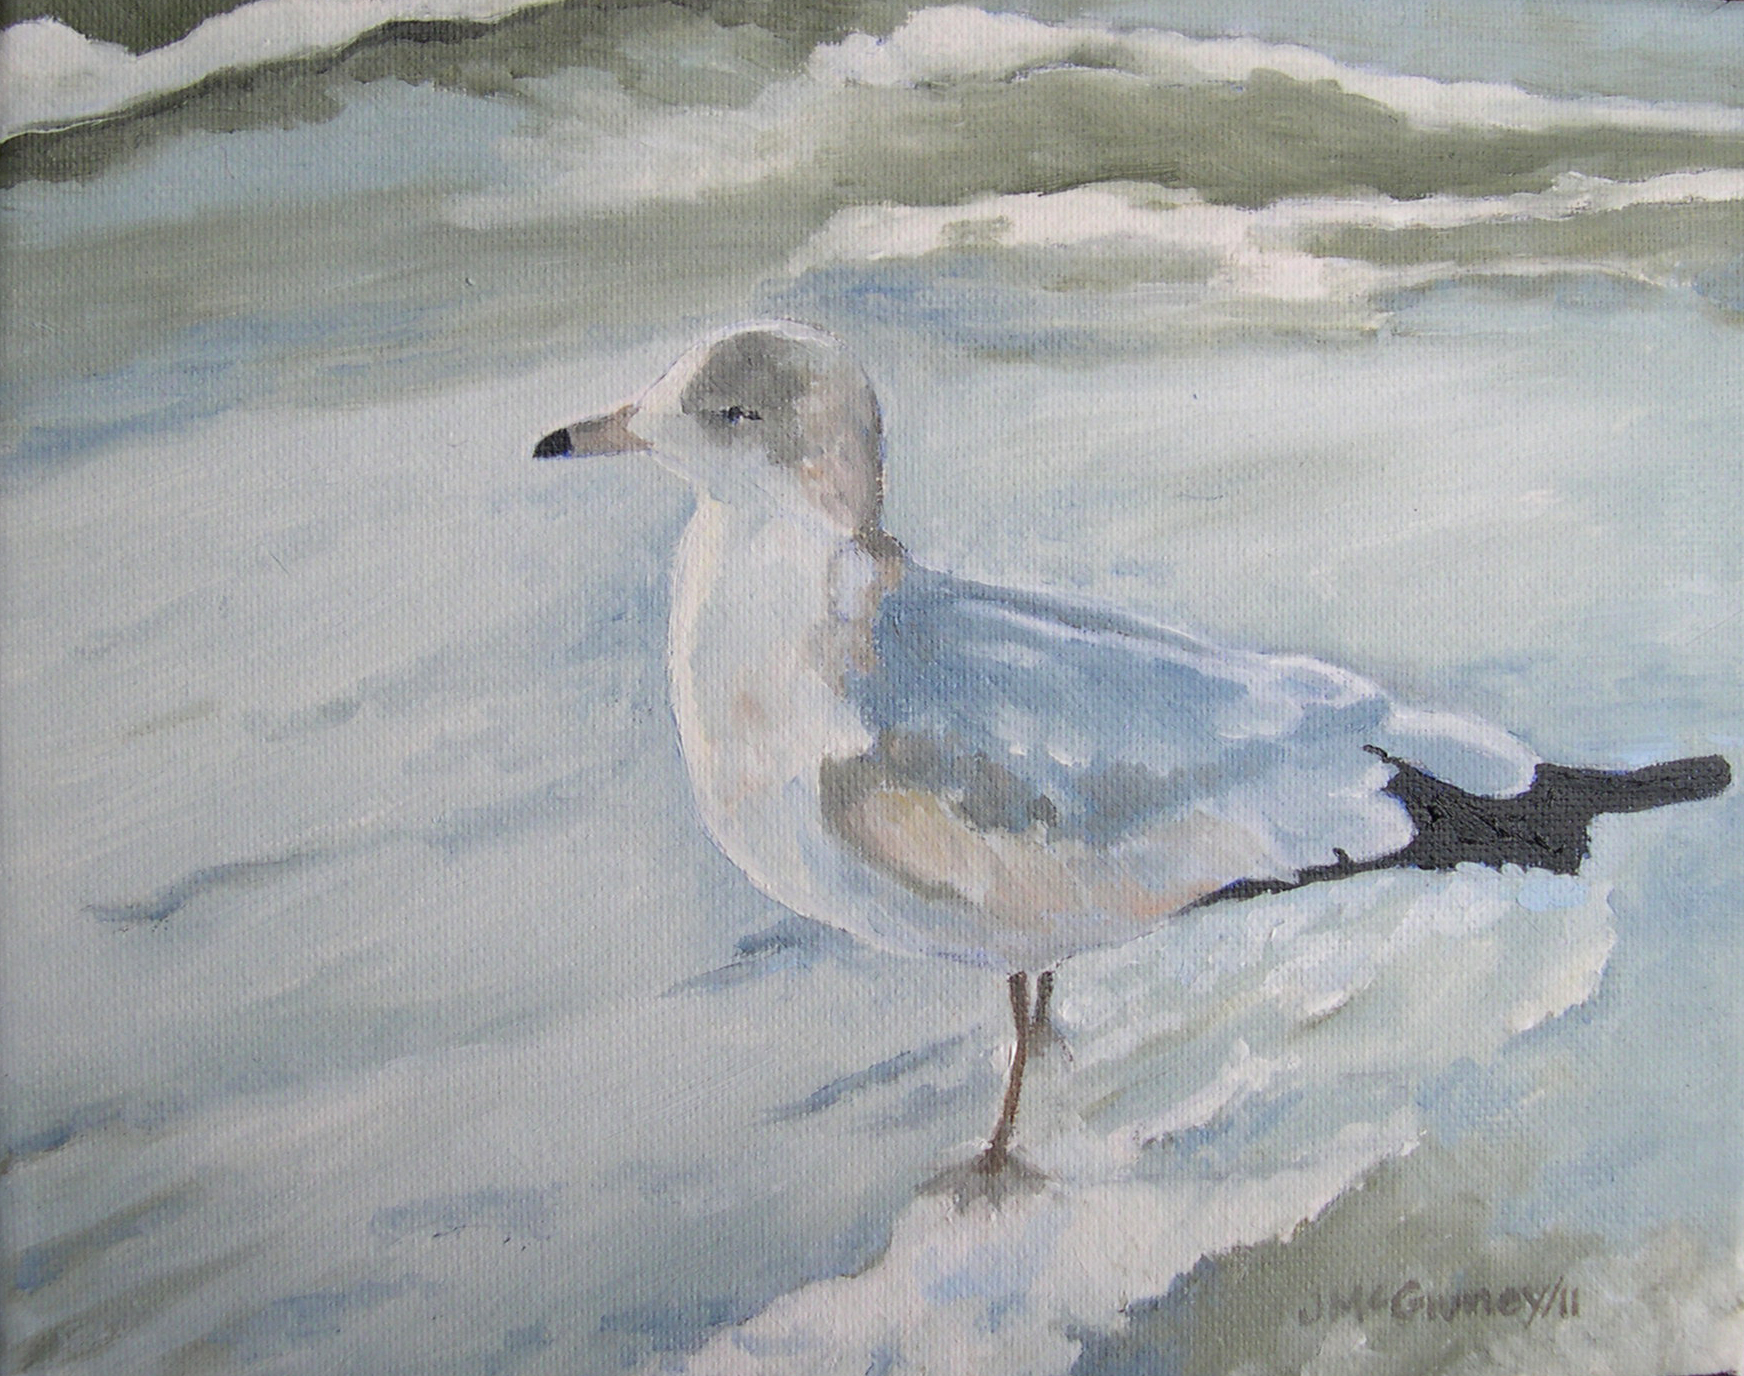 Sea Gull, Naples